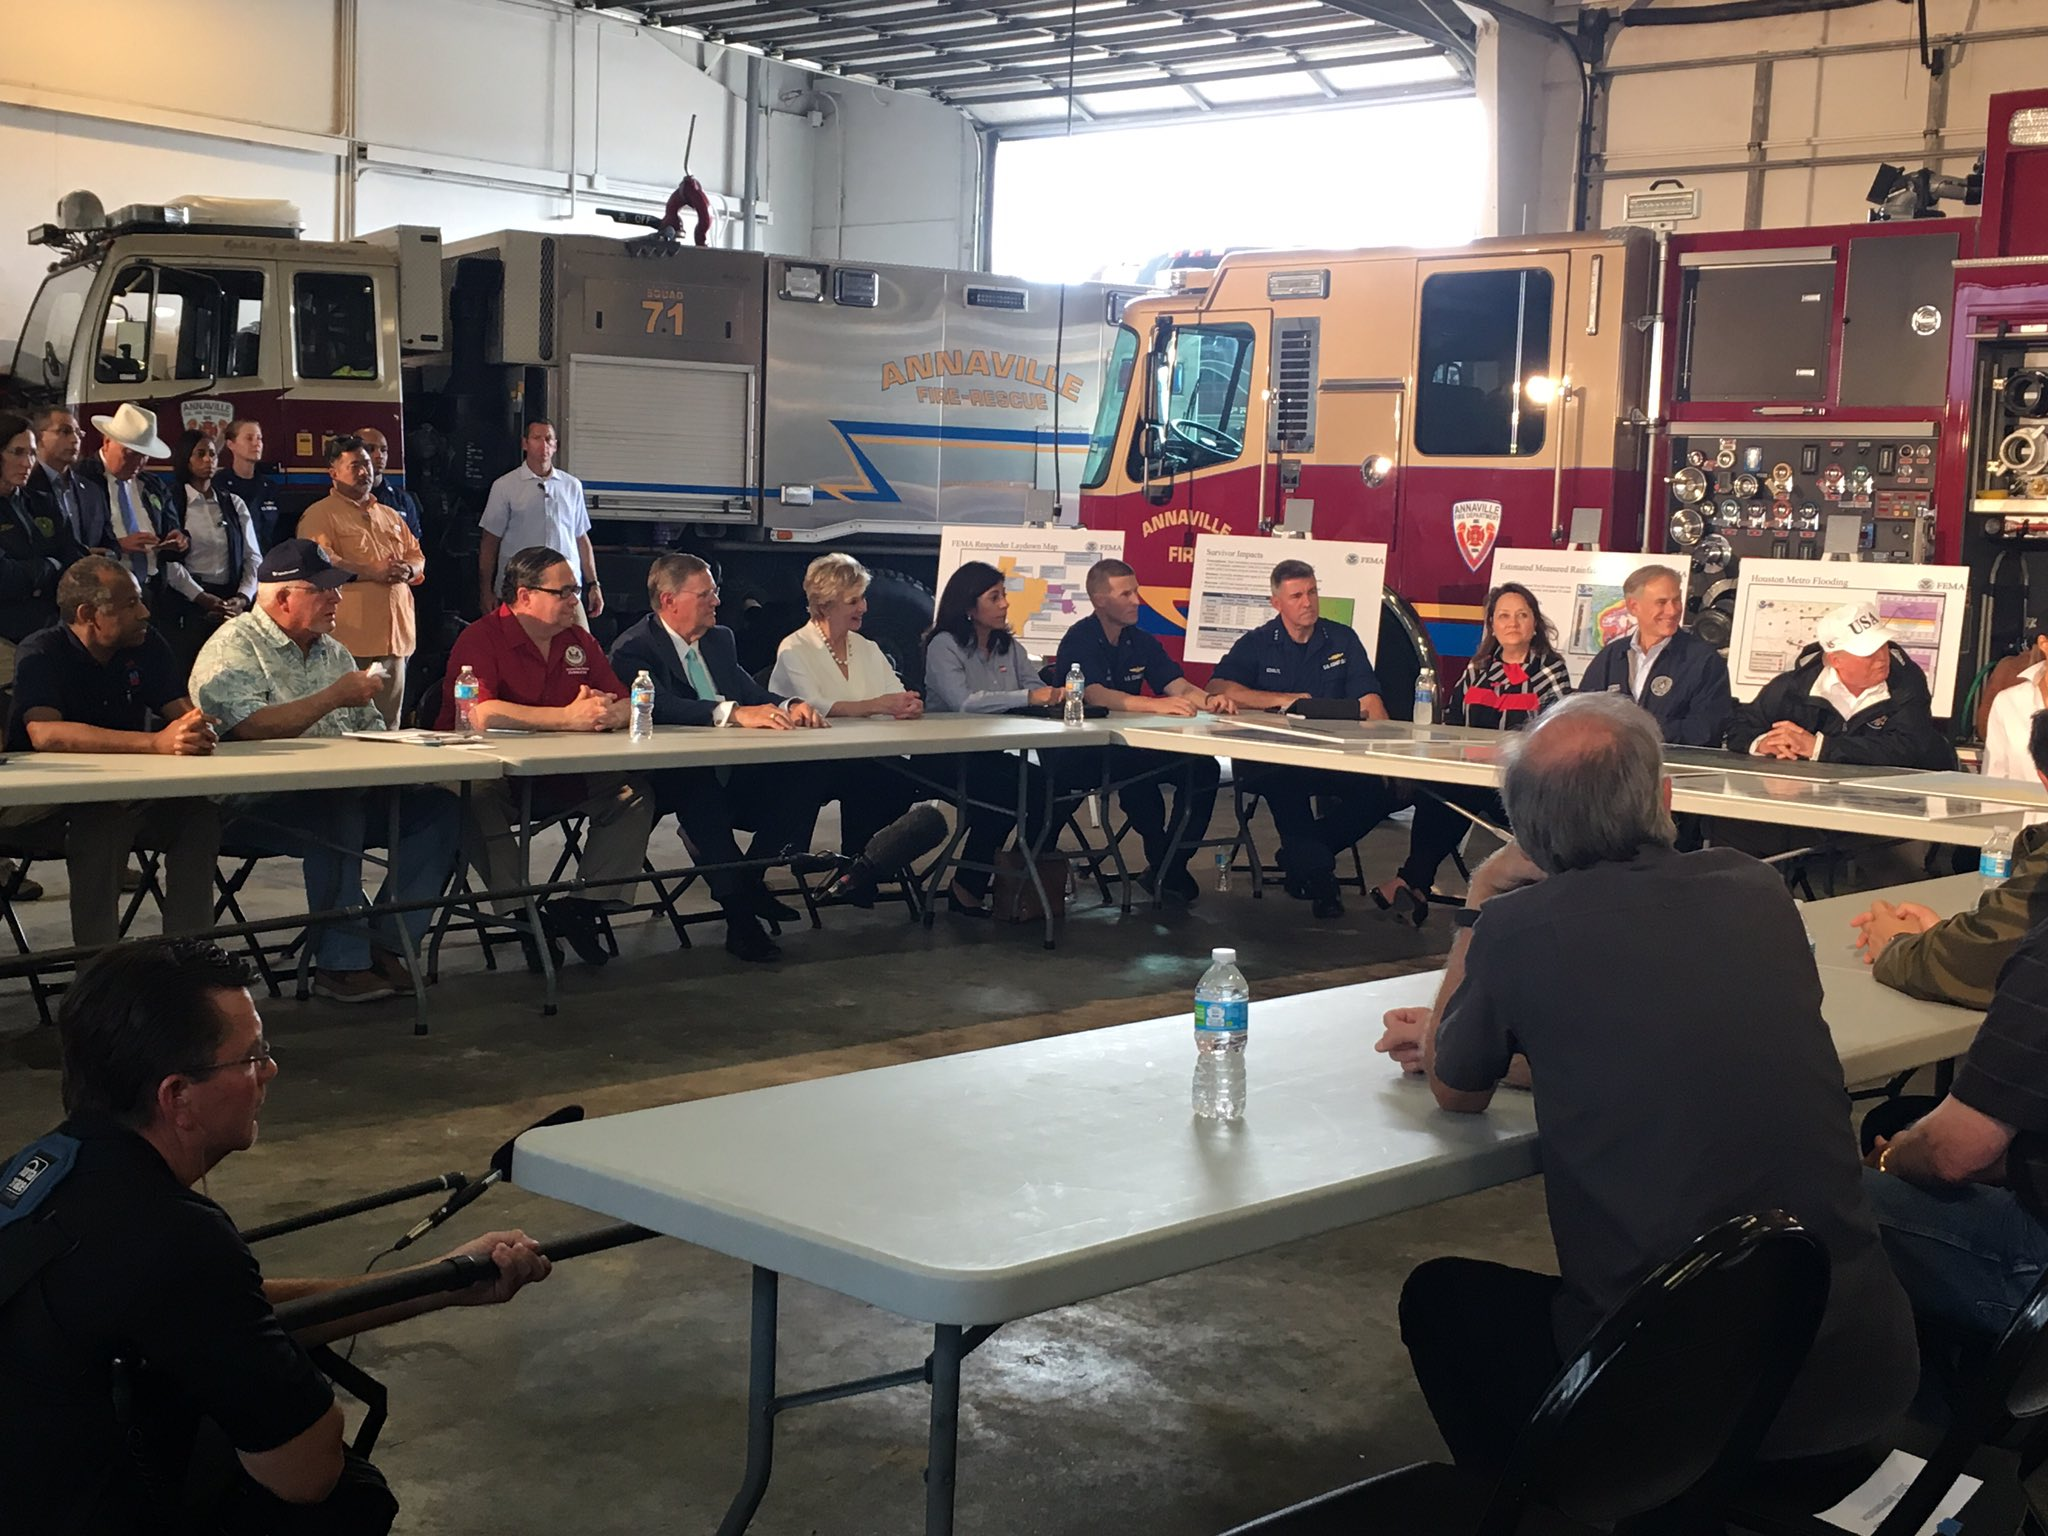 'We can count on the President of the United States' @GovAbbott tells group gathered at Fire Station 1. #POTUSinTX https://t.co/tDoTRTa7u7